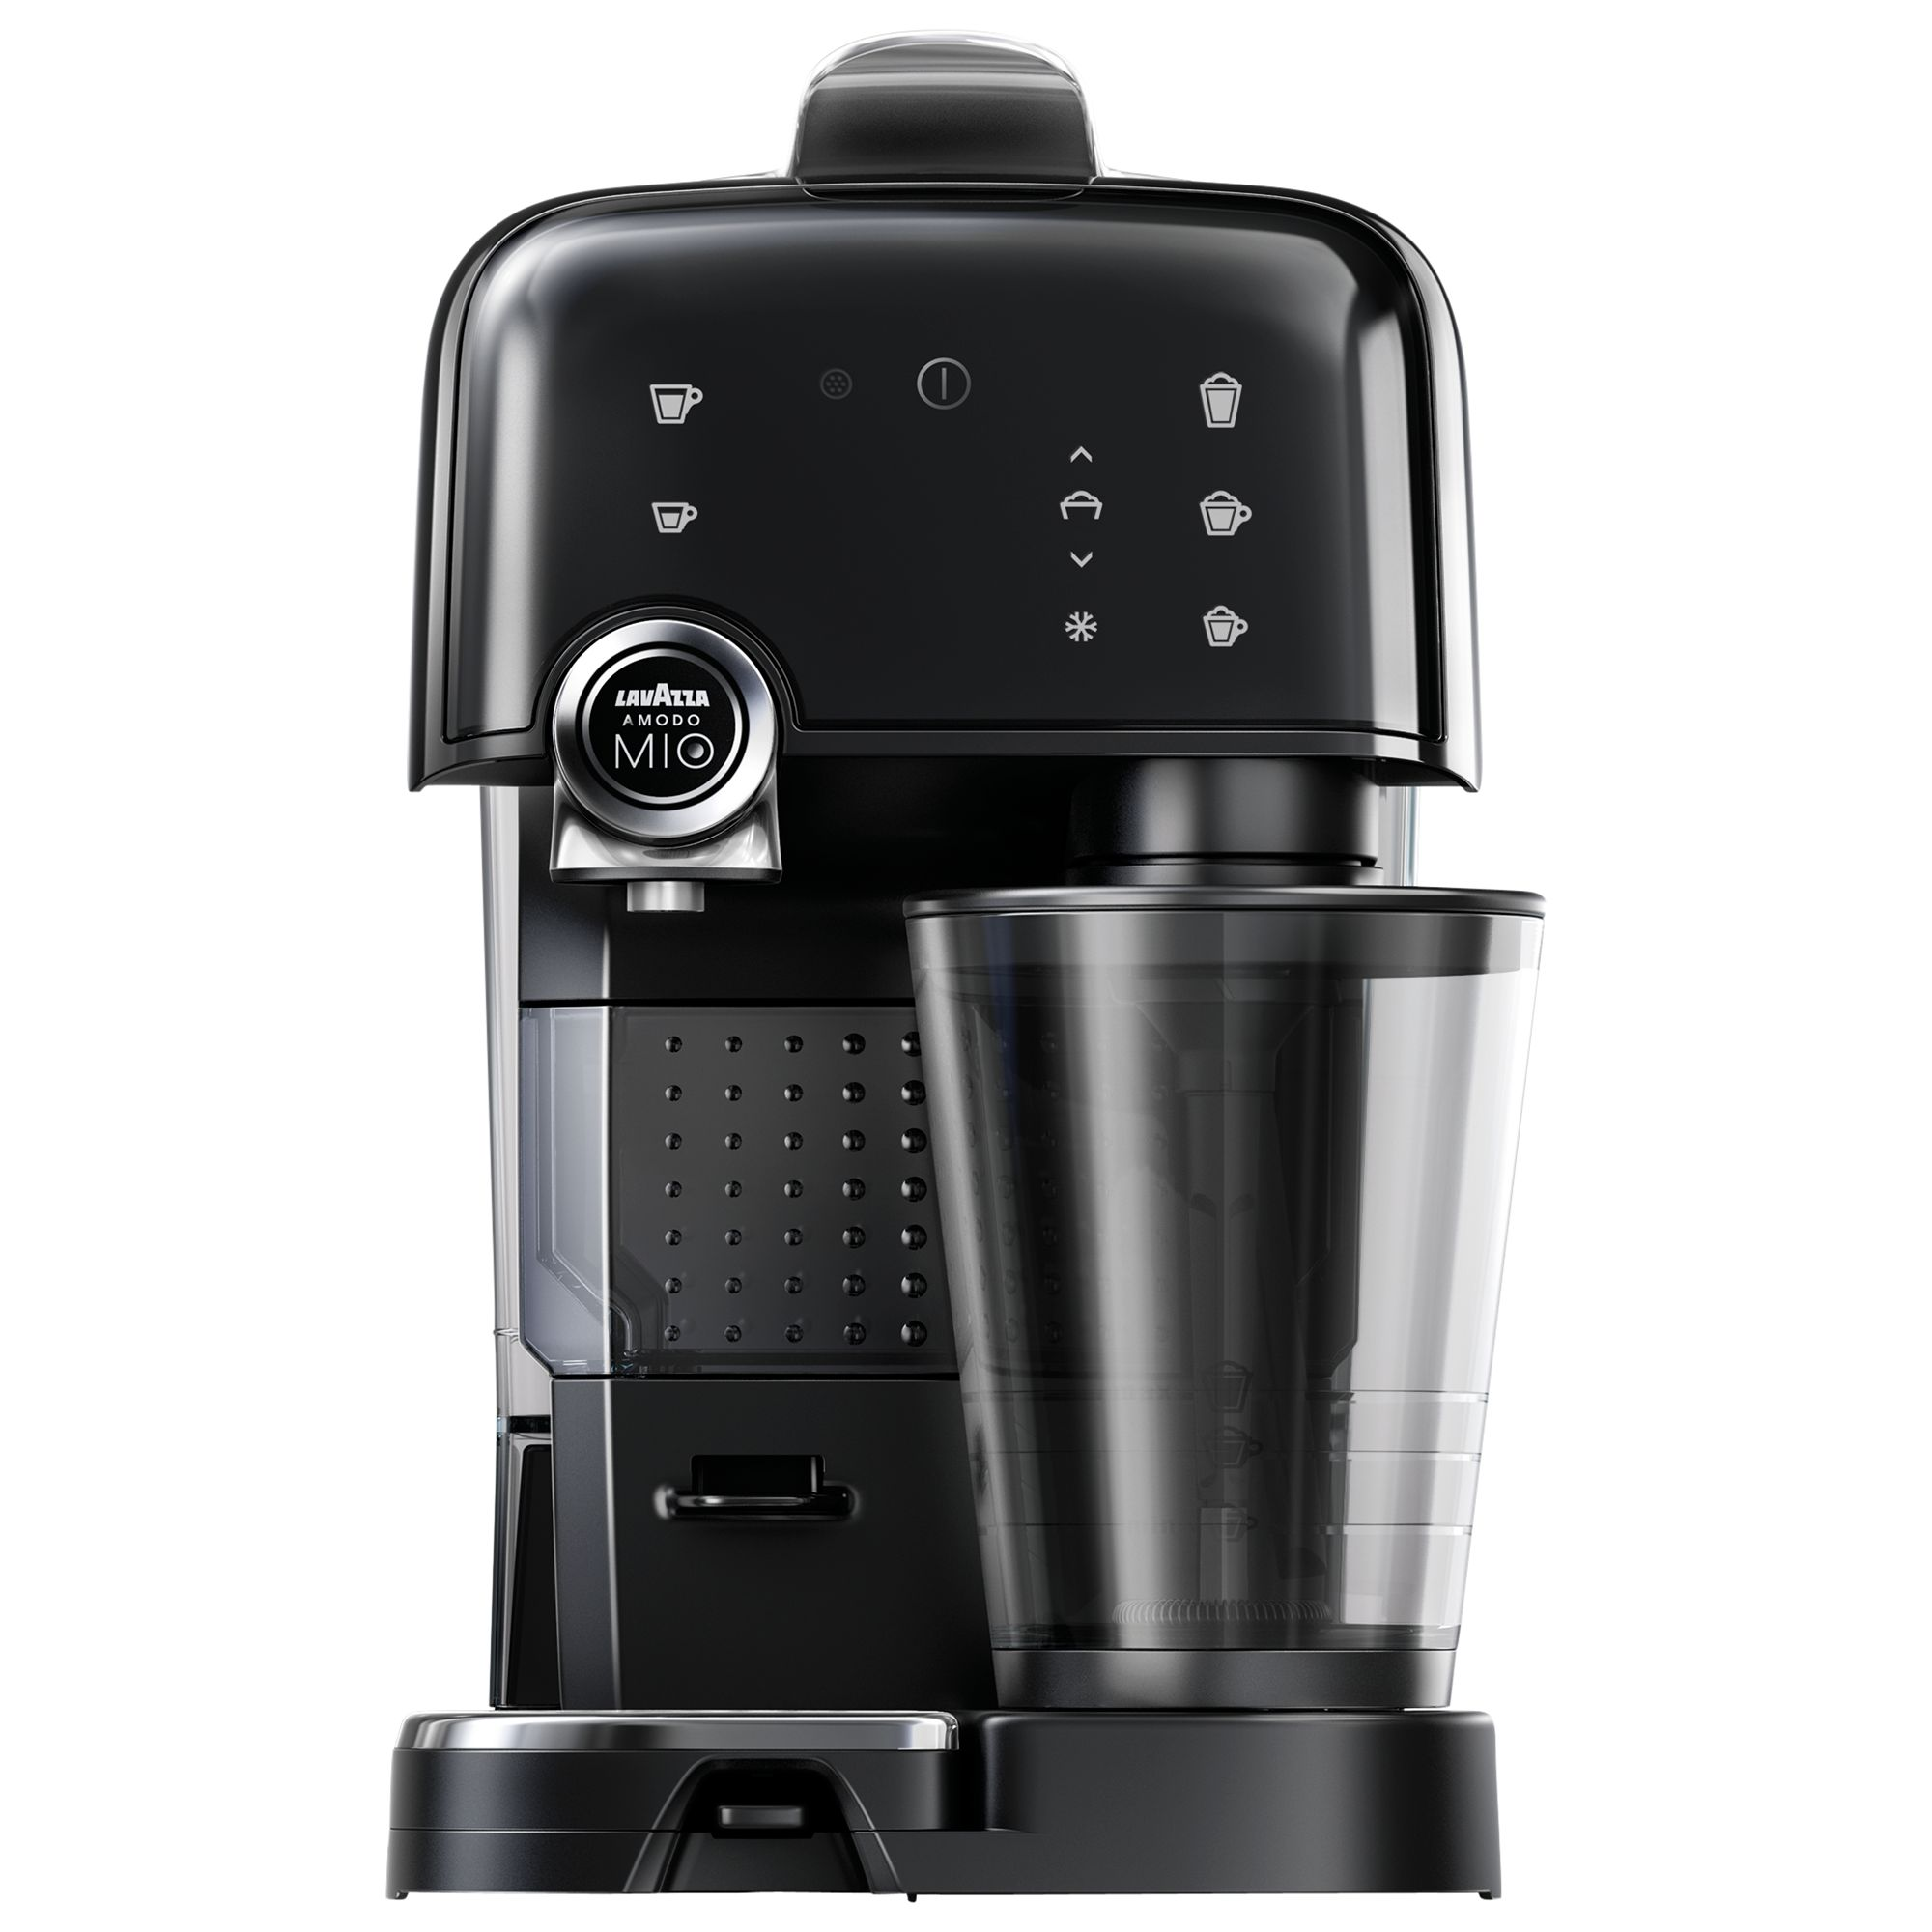 Italian Coffee Maker John Lewis : Buy Lavazza A Modo Mio Fantasia LM7000 Cappuccino Latte Coffee Machine John Lewis